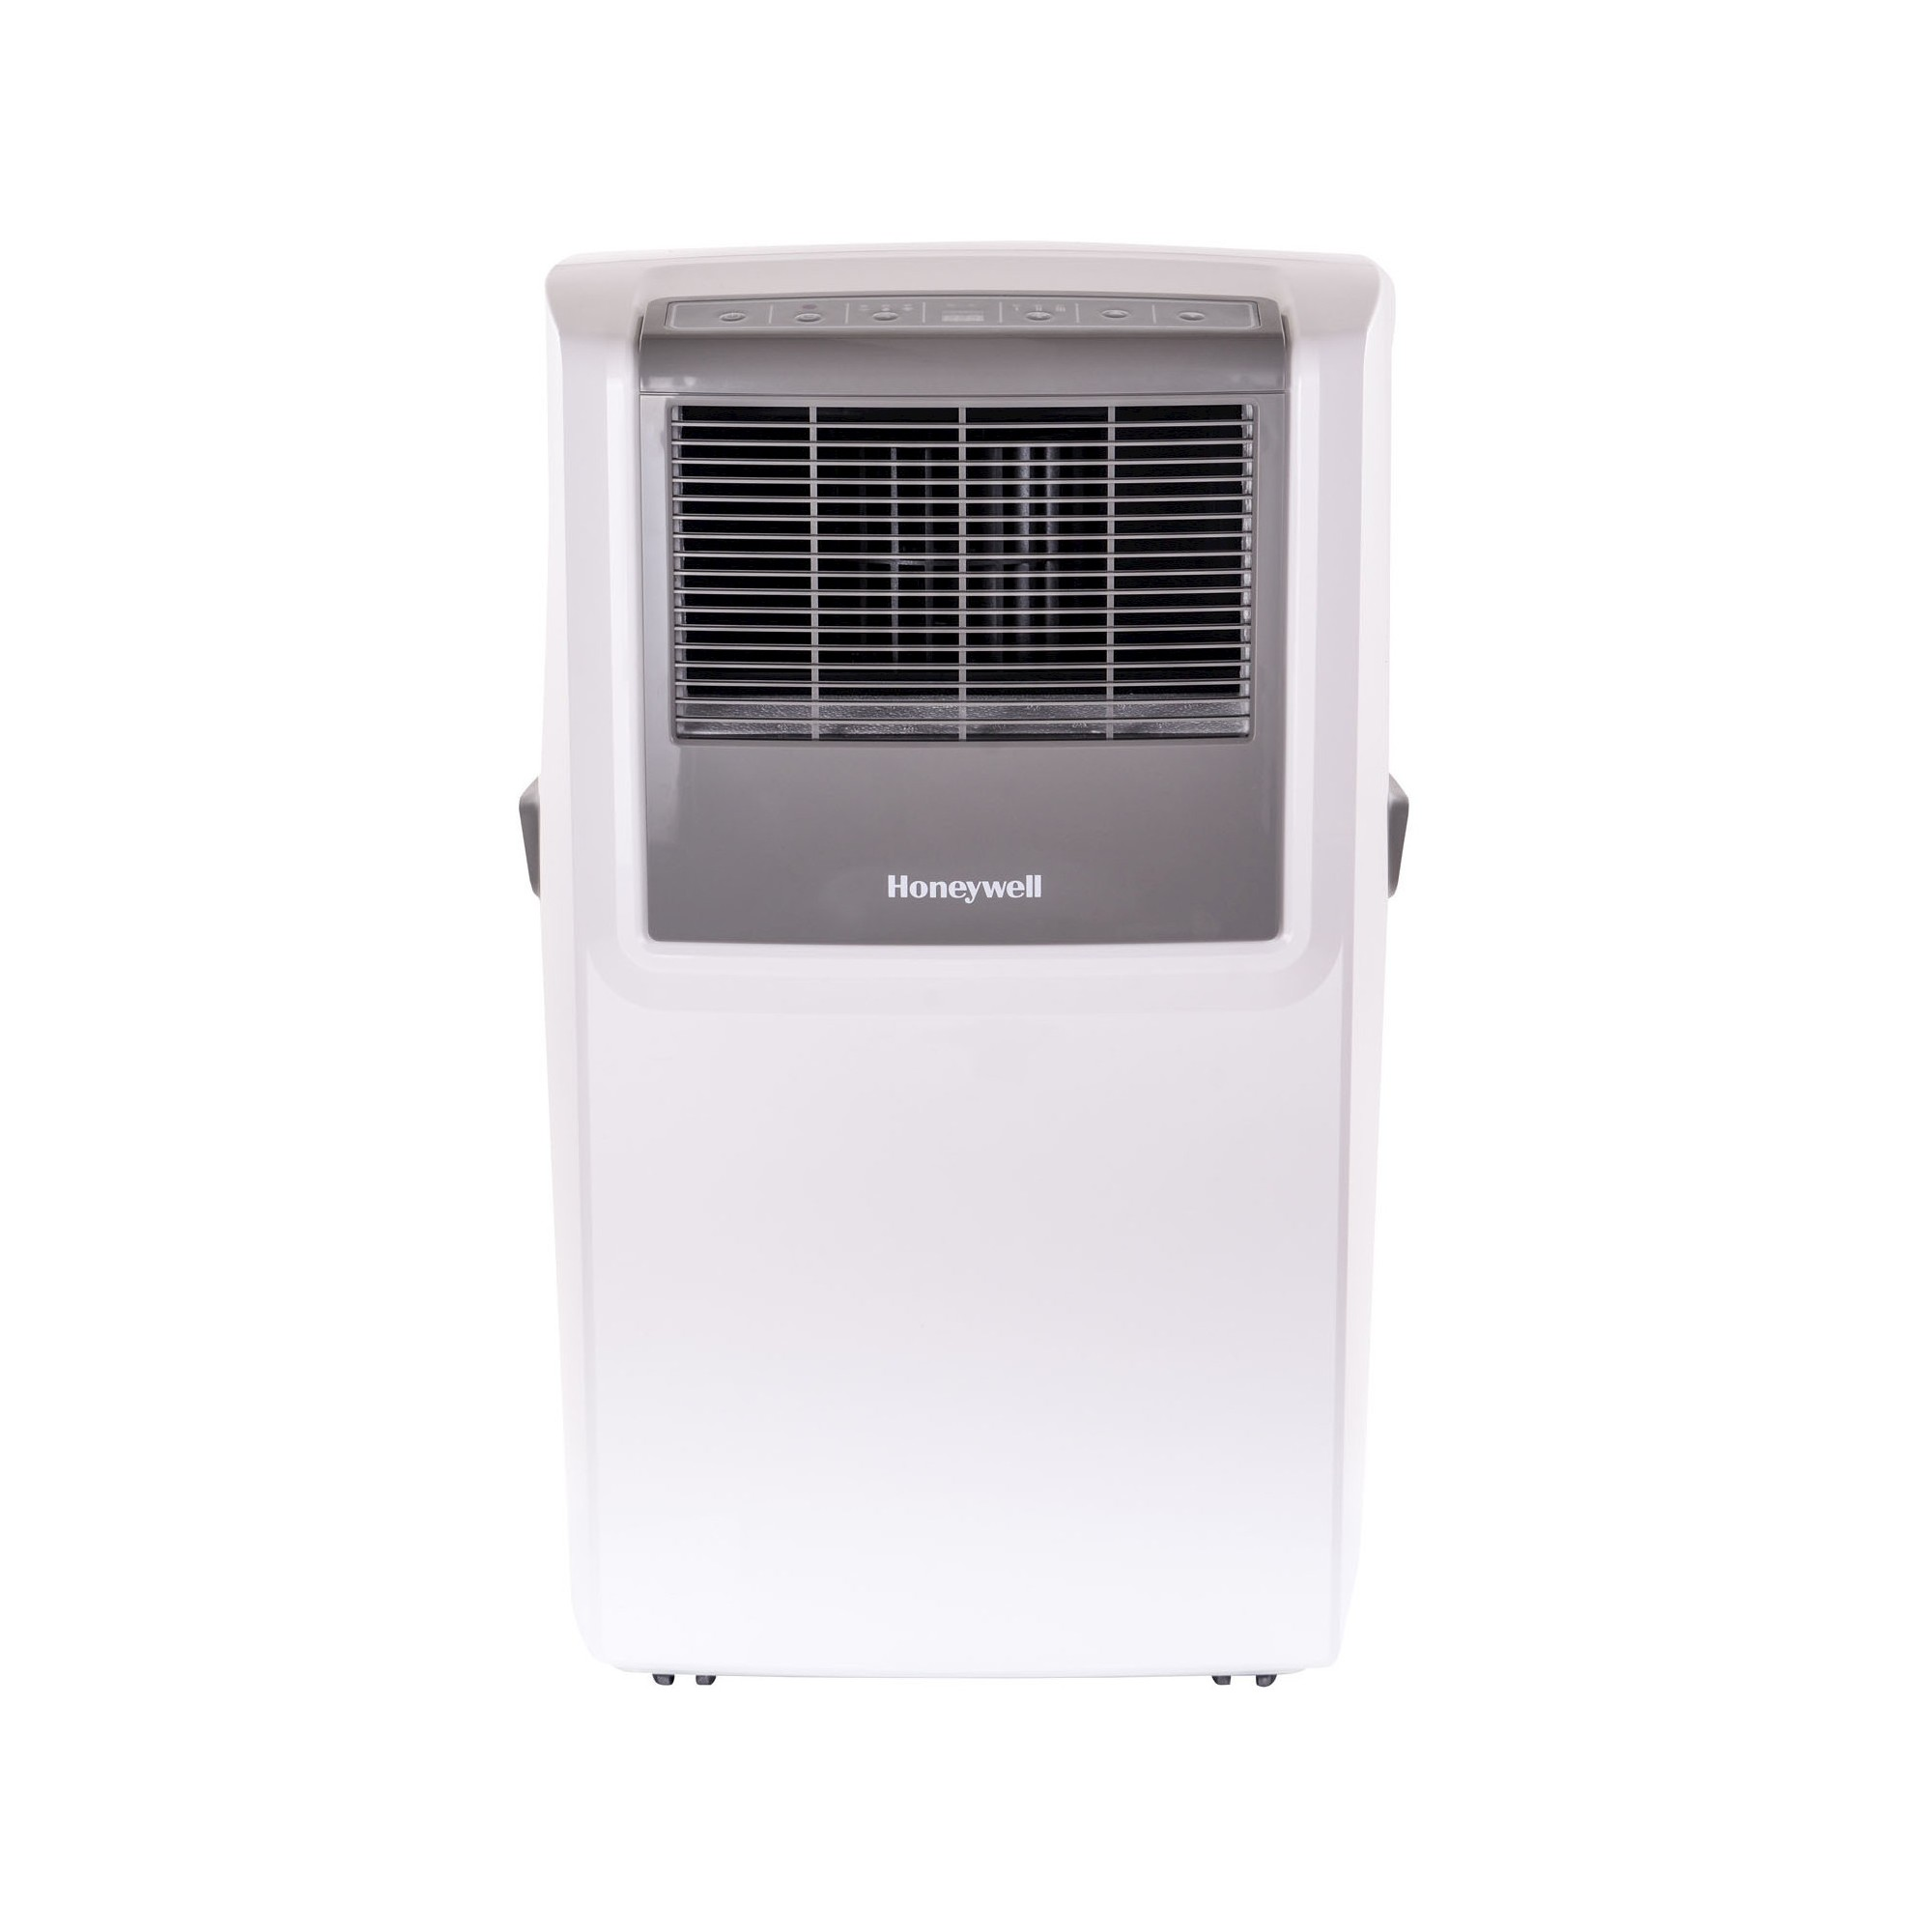 Honeywell 10000BTU Portable Air Conditioner with Front